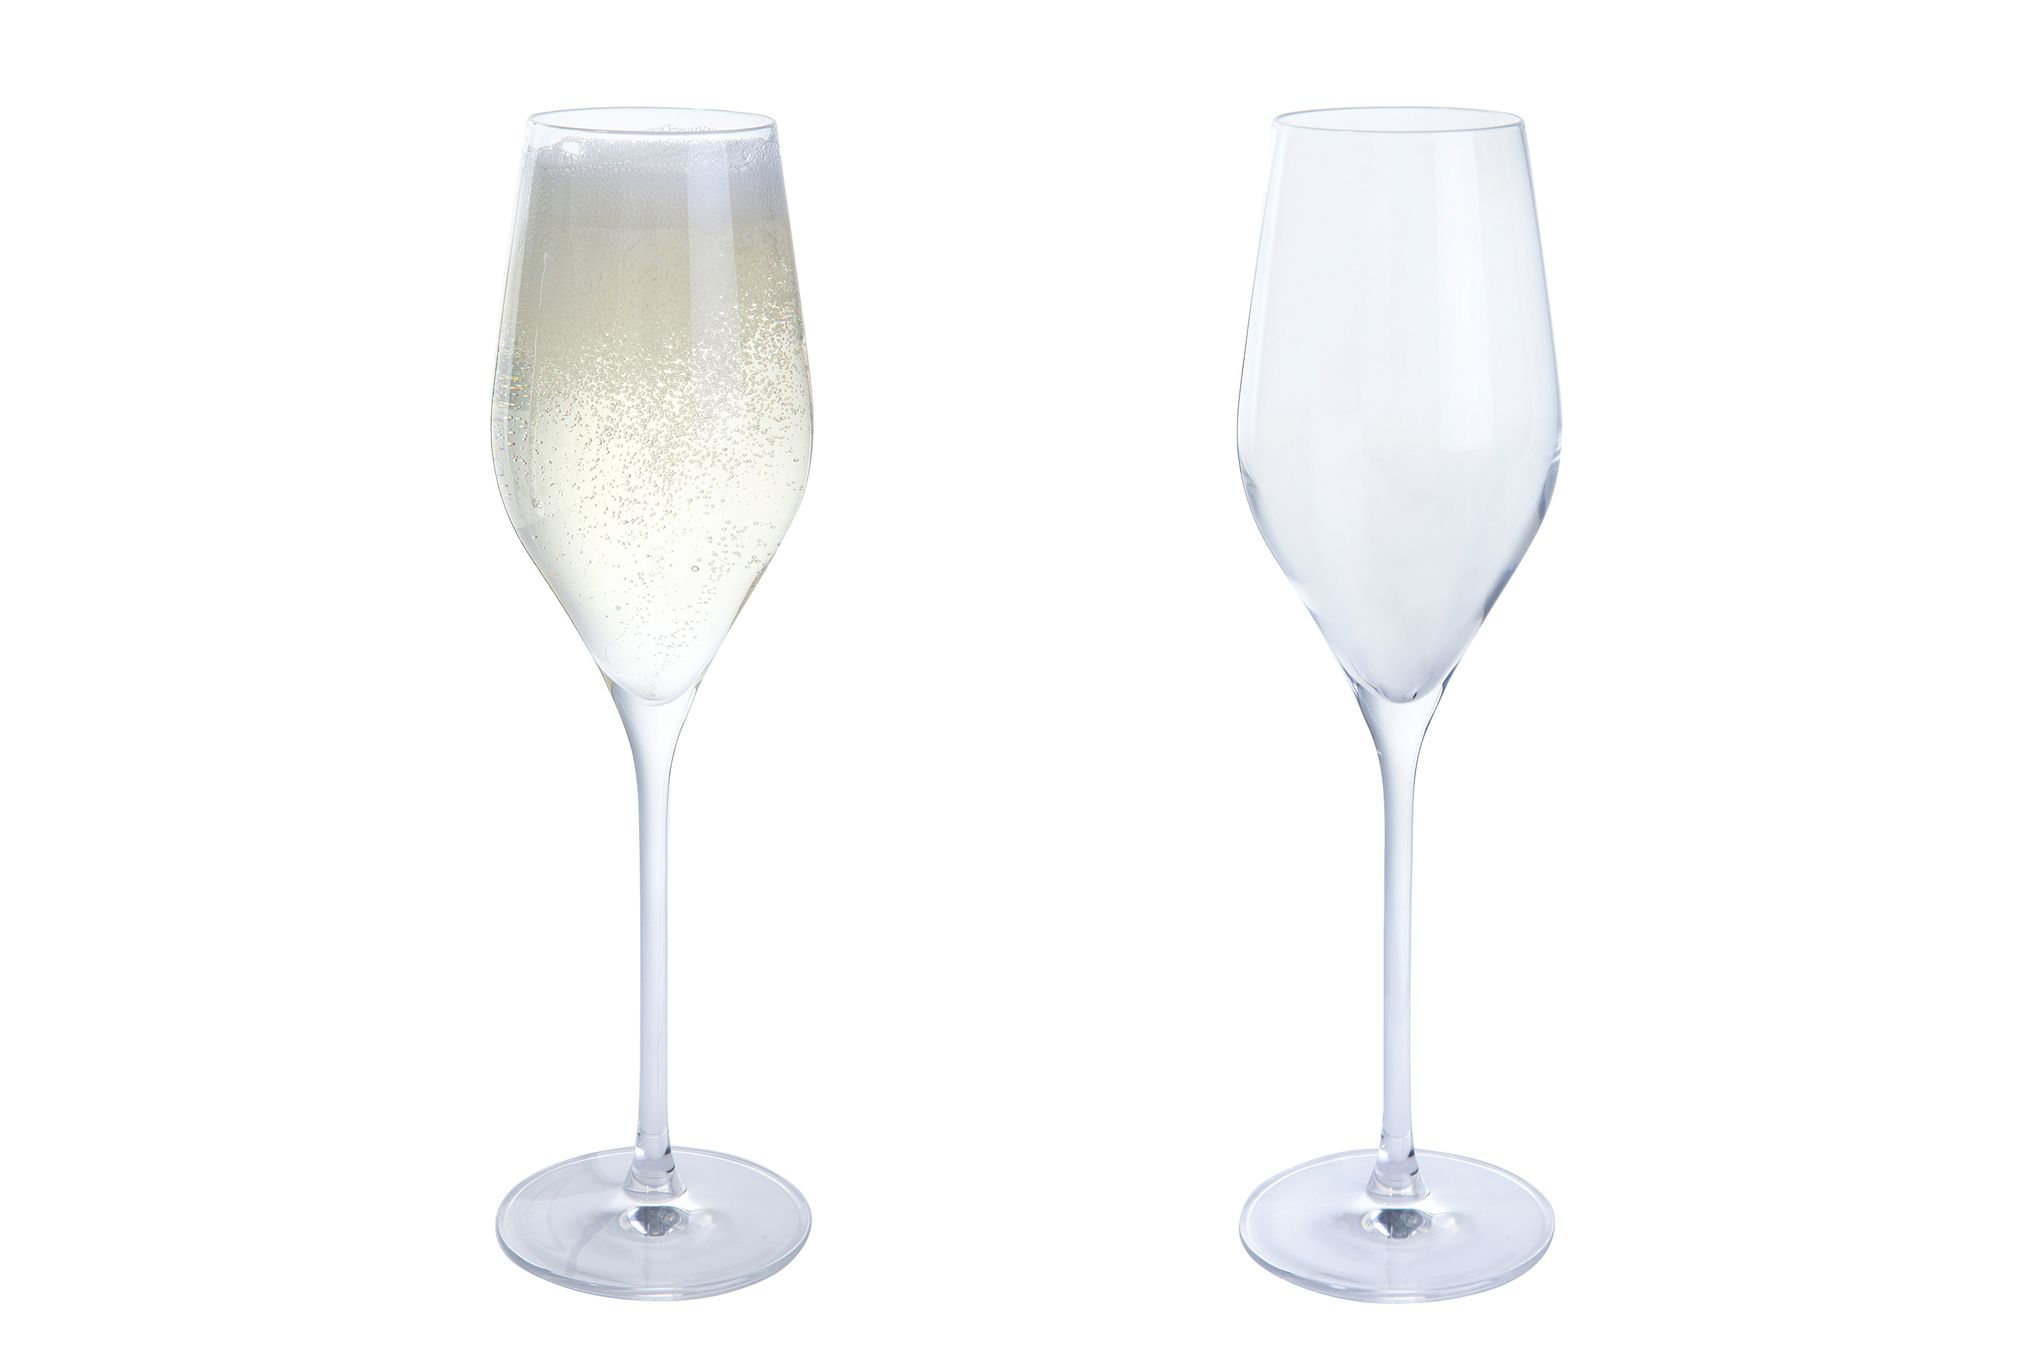 Dartington Crystal Wine & Bar Pair of Prosecco Glasses 260ml thumb 1